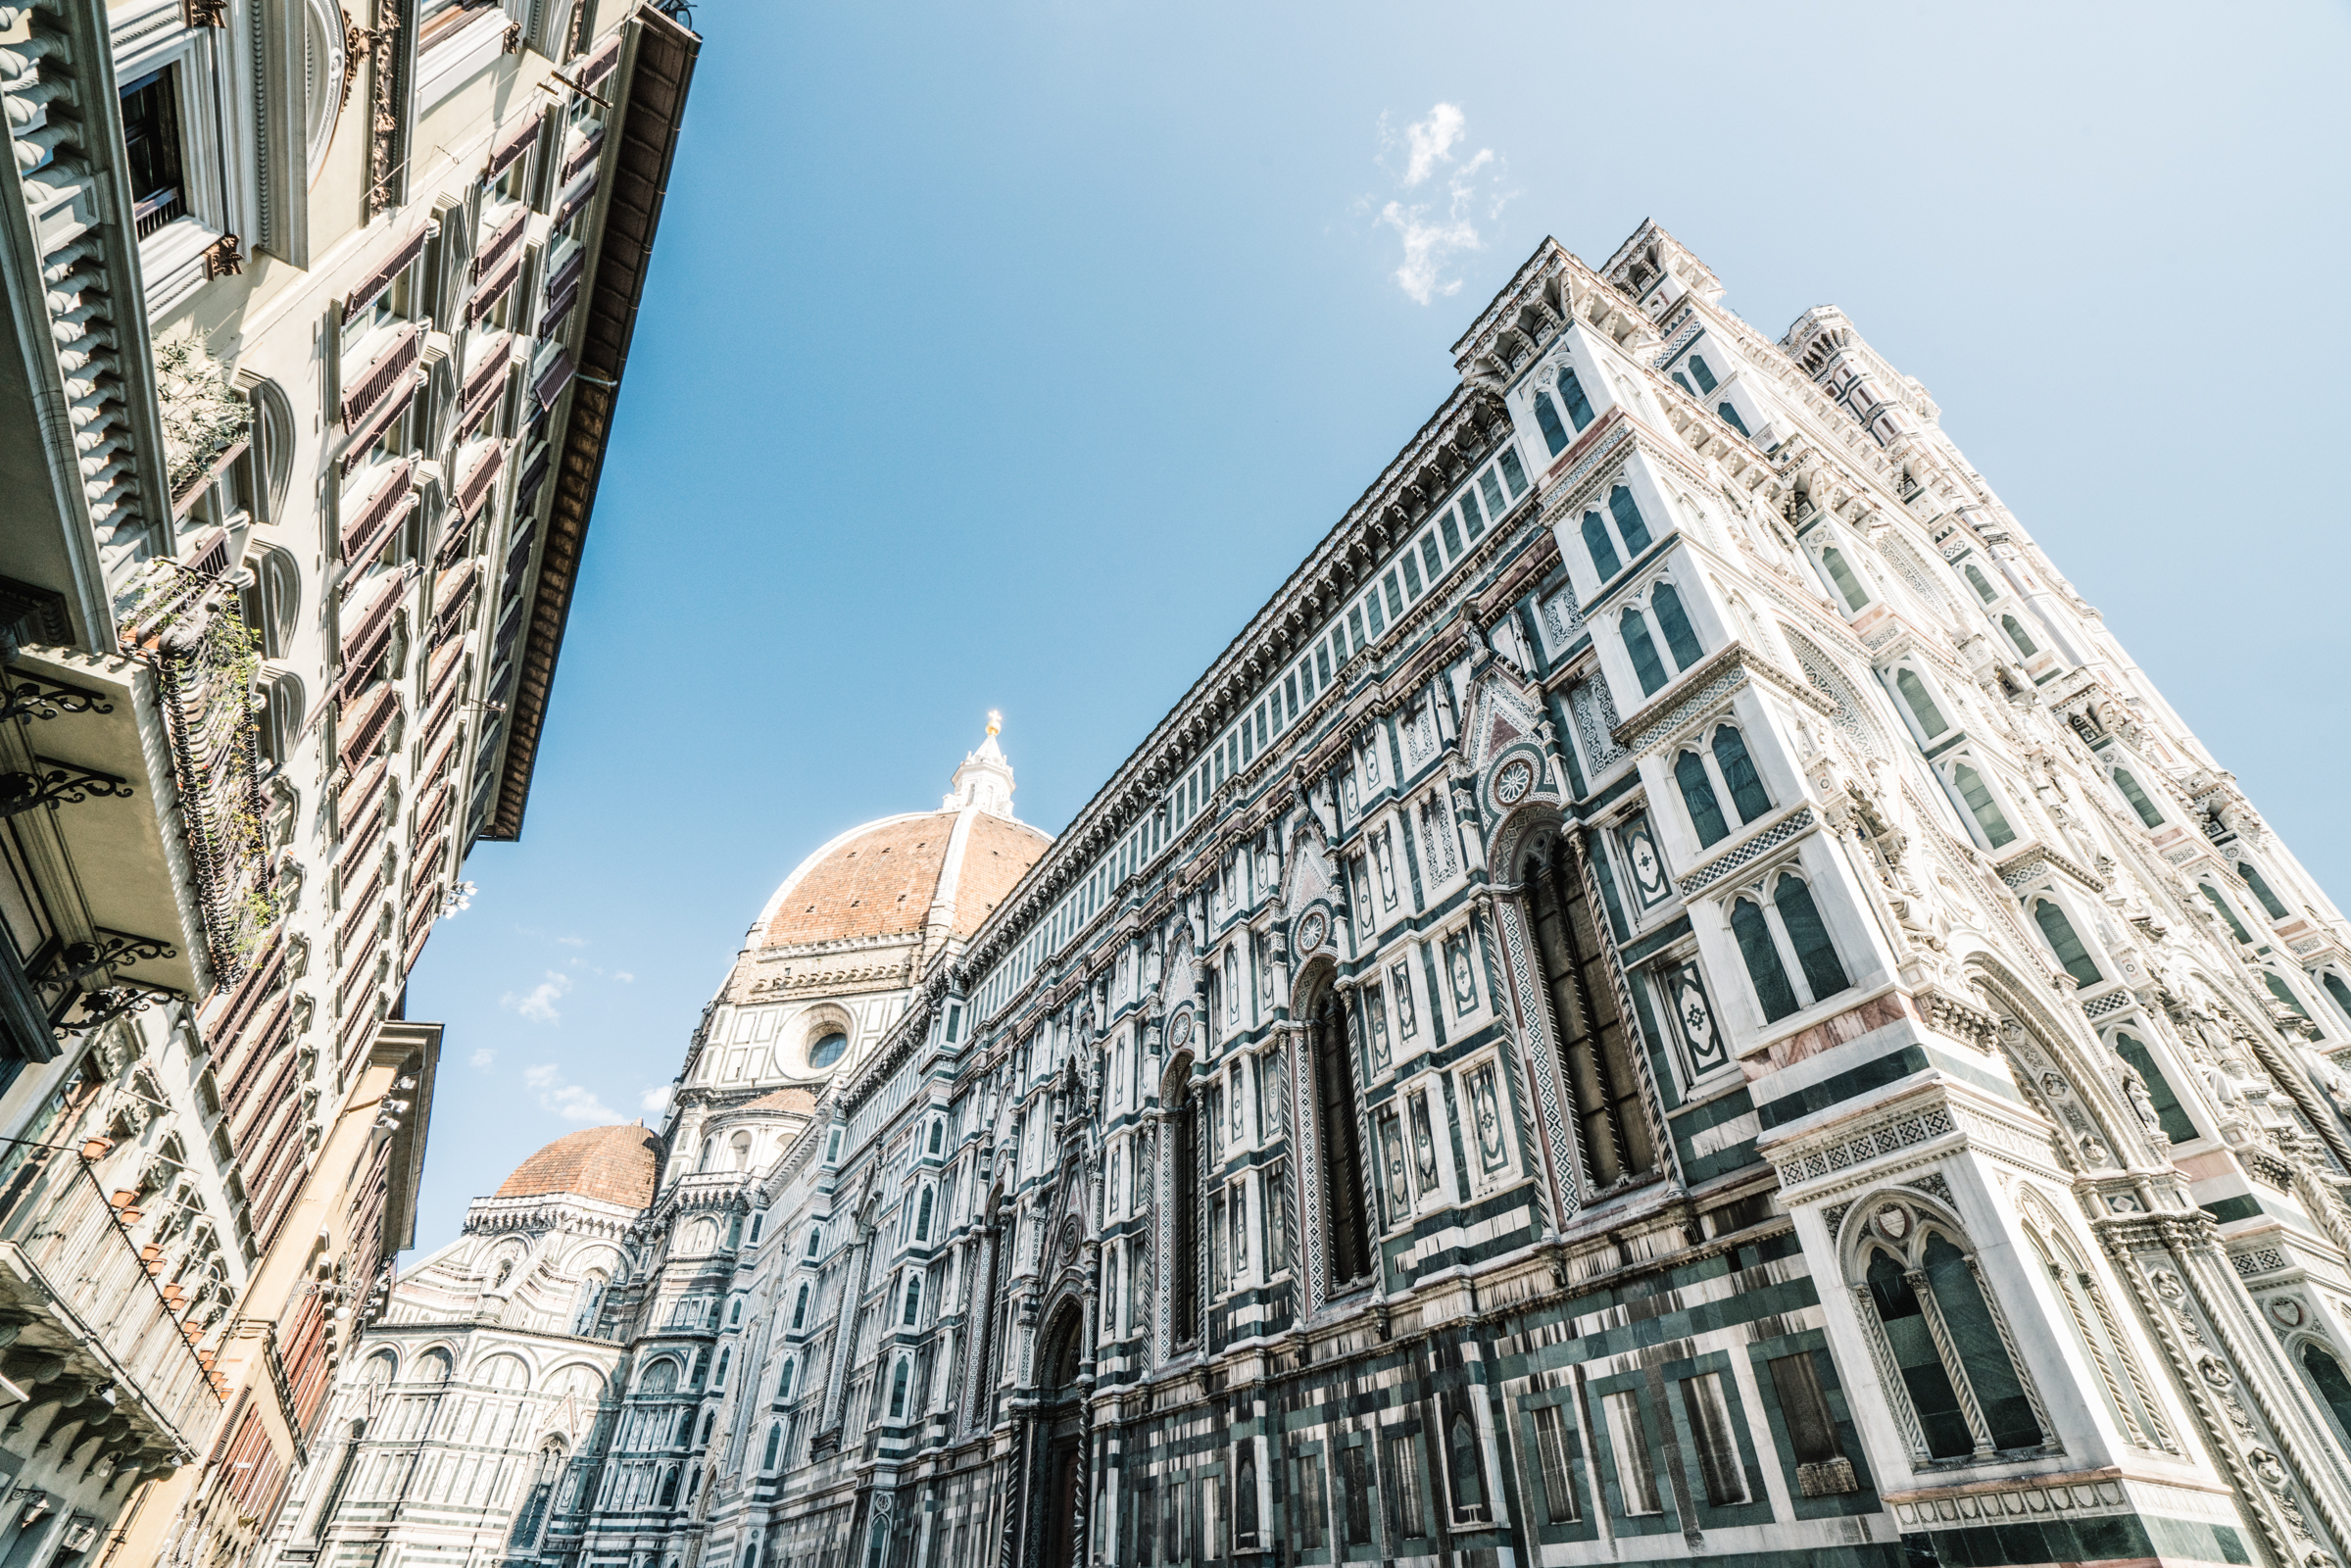 Best Things to Do in Florence Italy